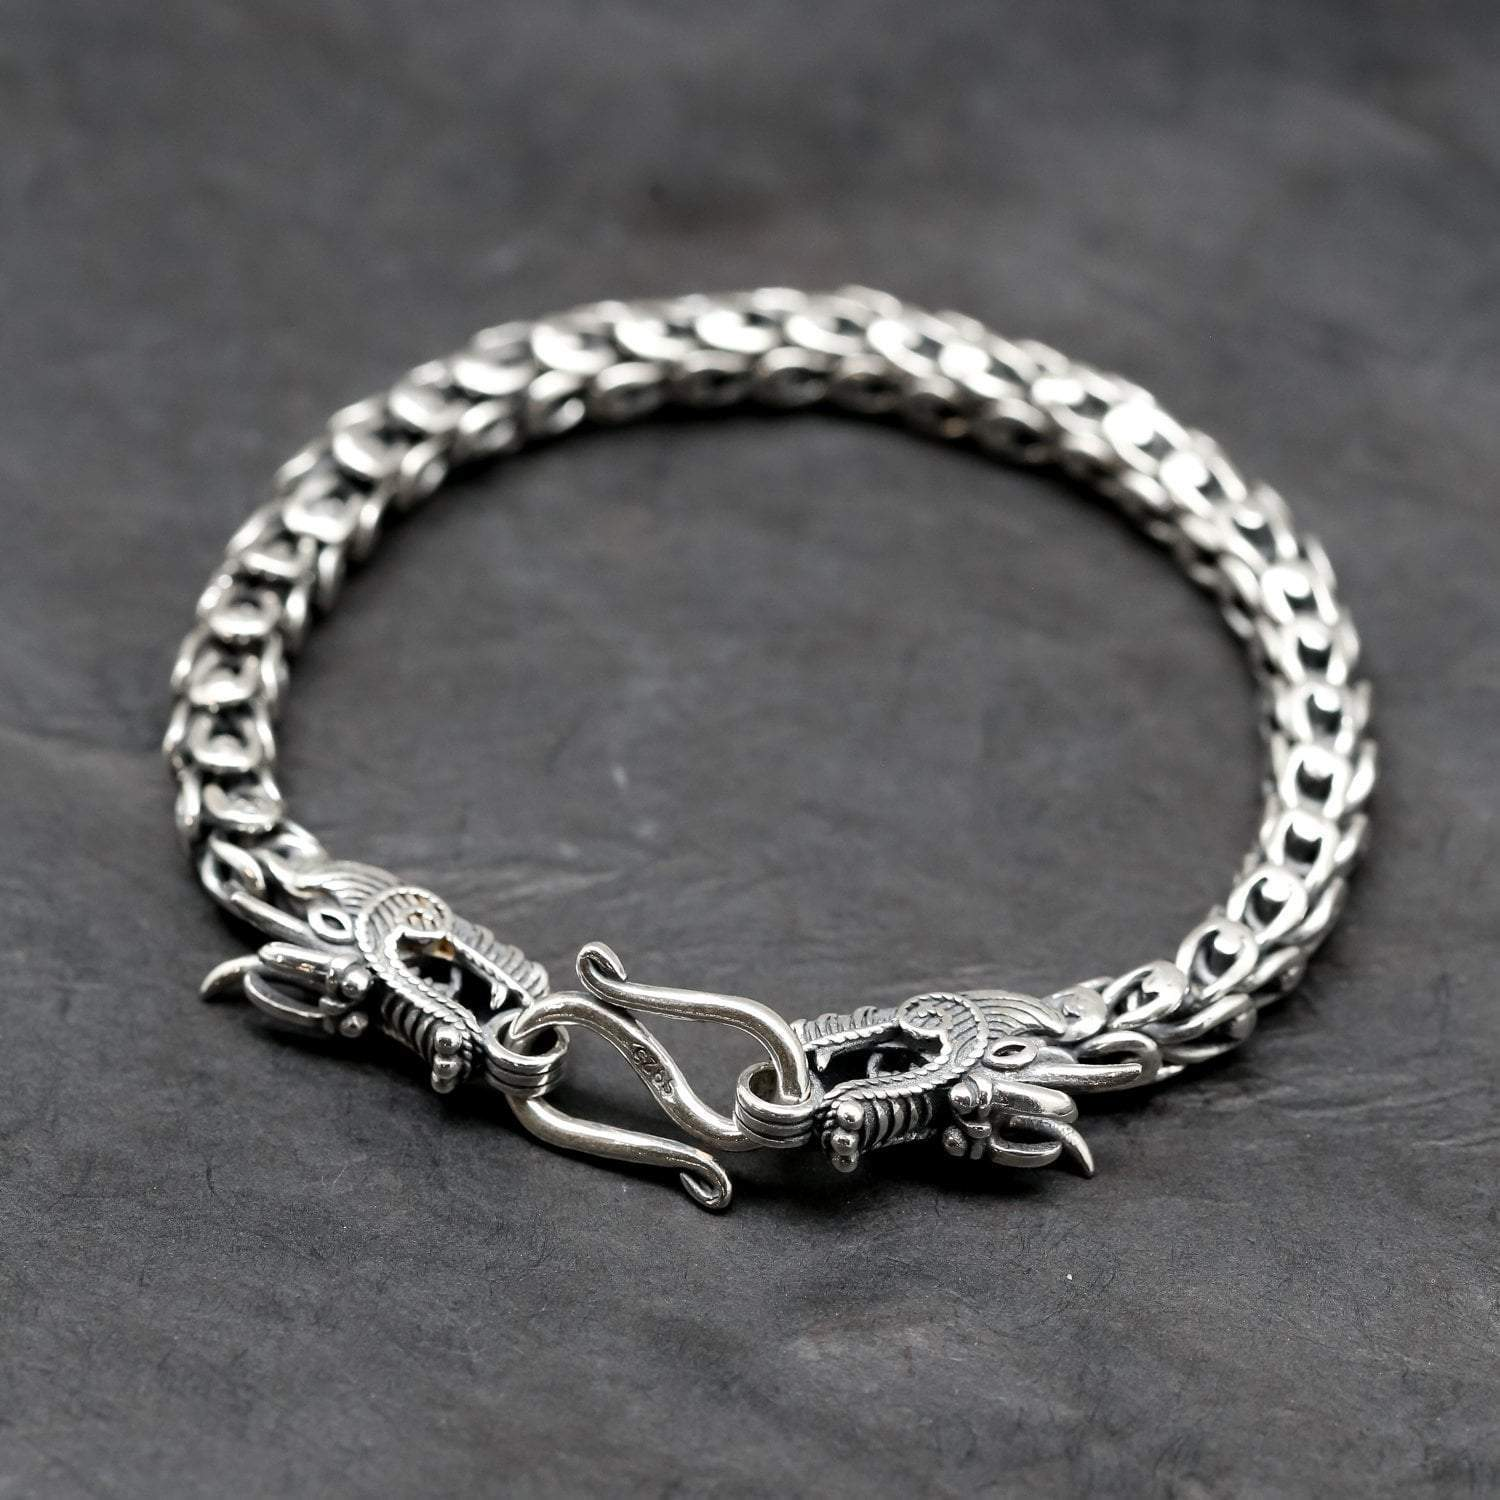 b22d7a87d18d2 Men's Dragon Bracelet - Handmade Sterling Silver Bracelets for Men -  thedharmashop